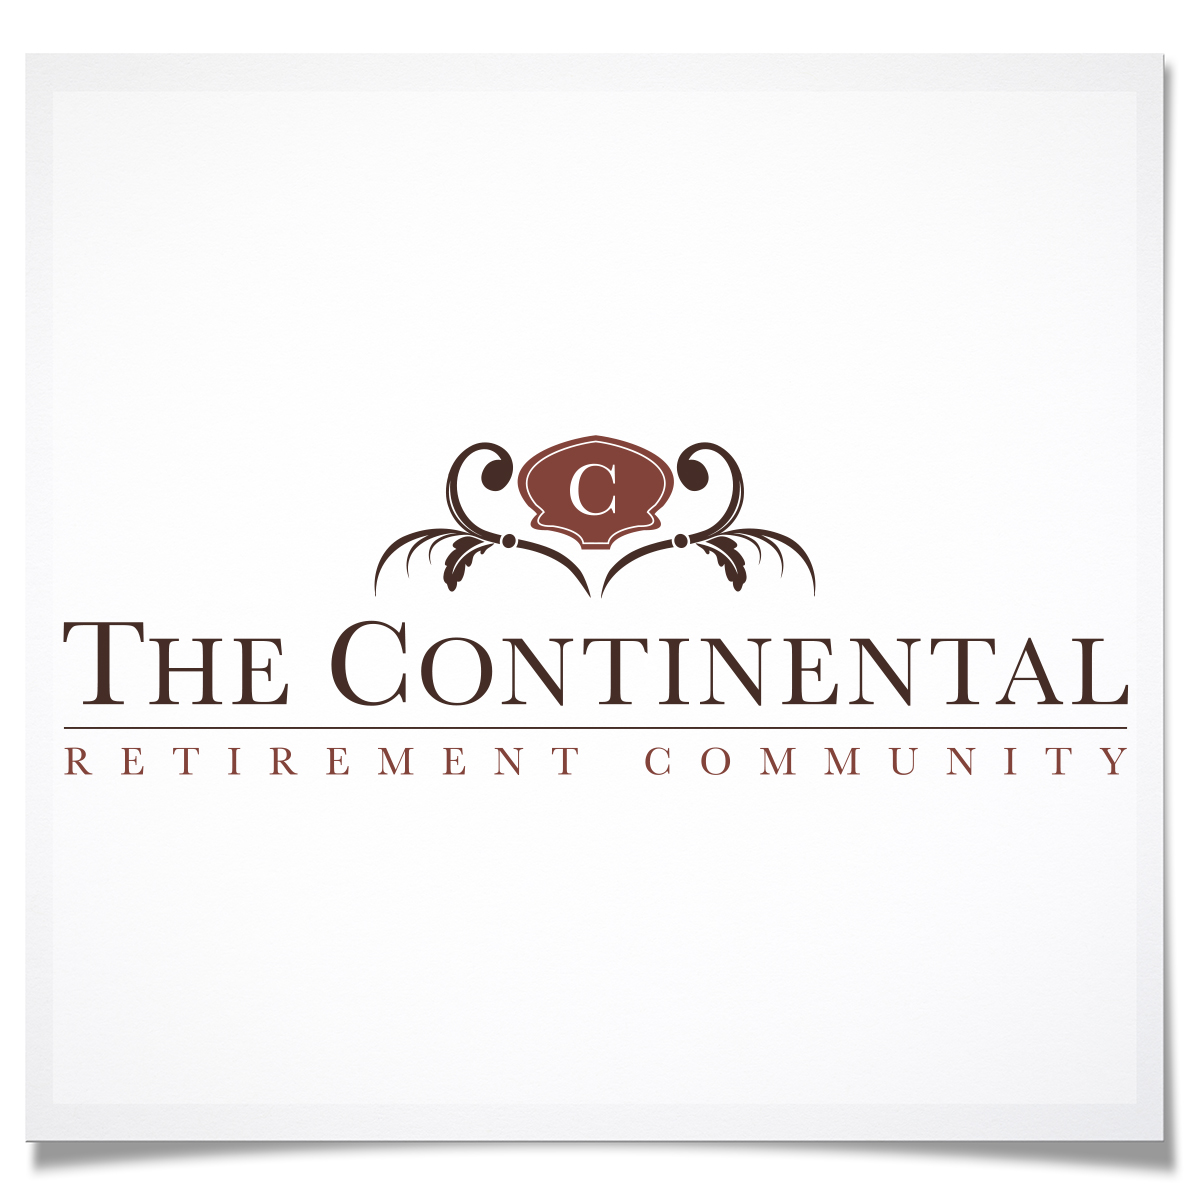 The Continental Retirement Community image 15